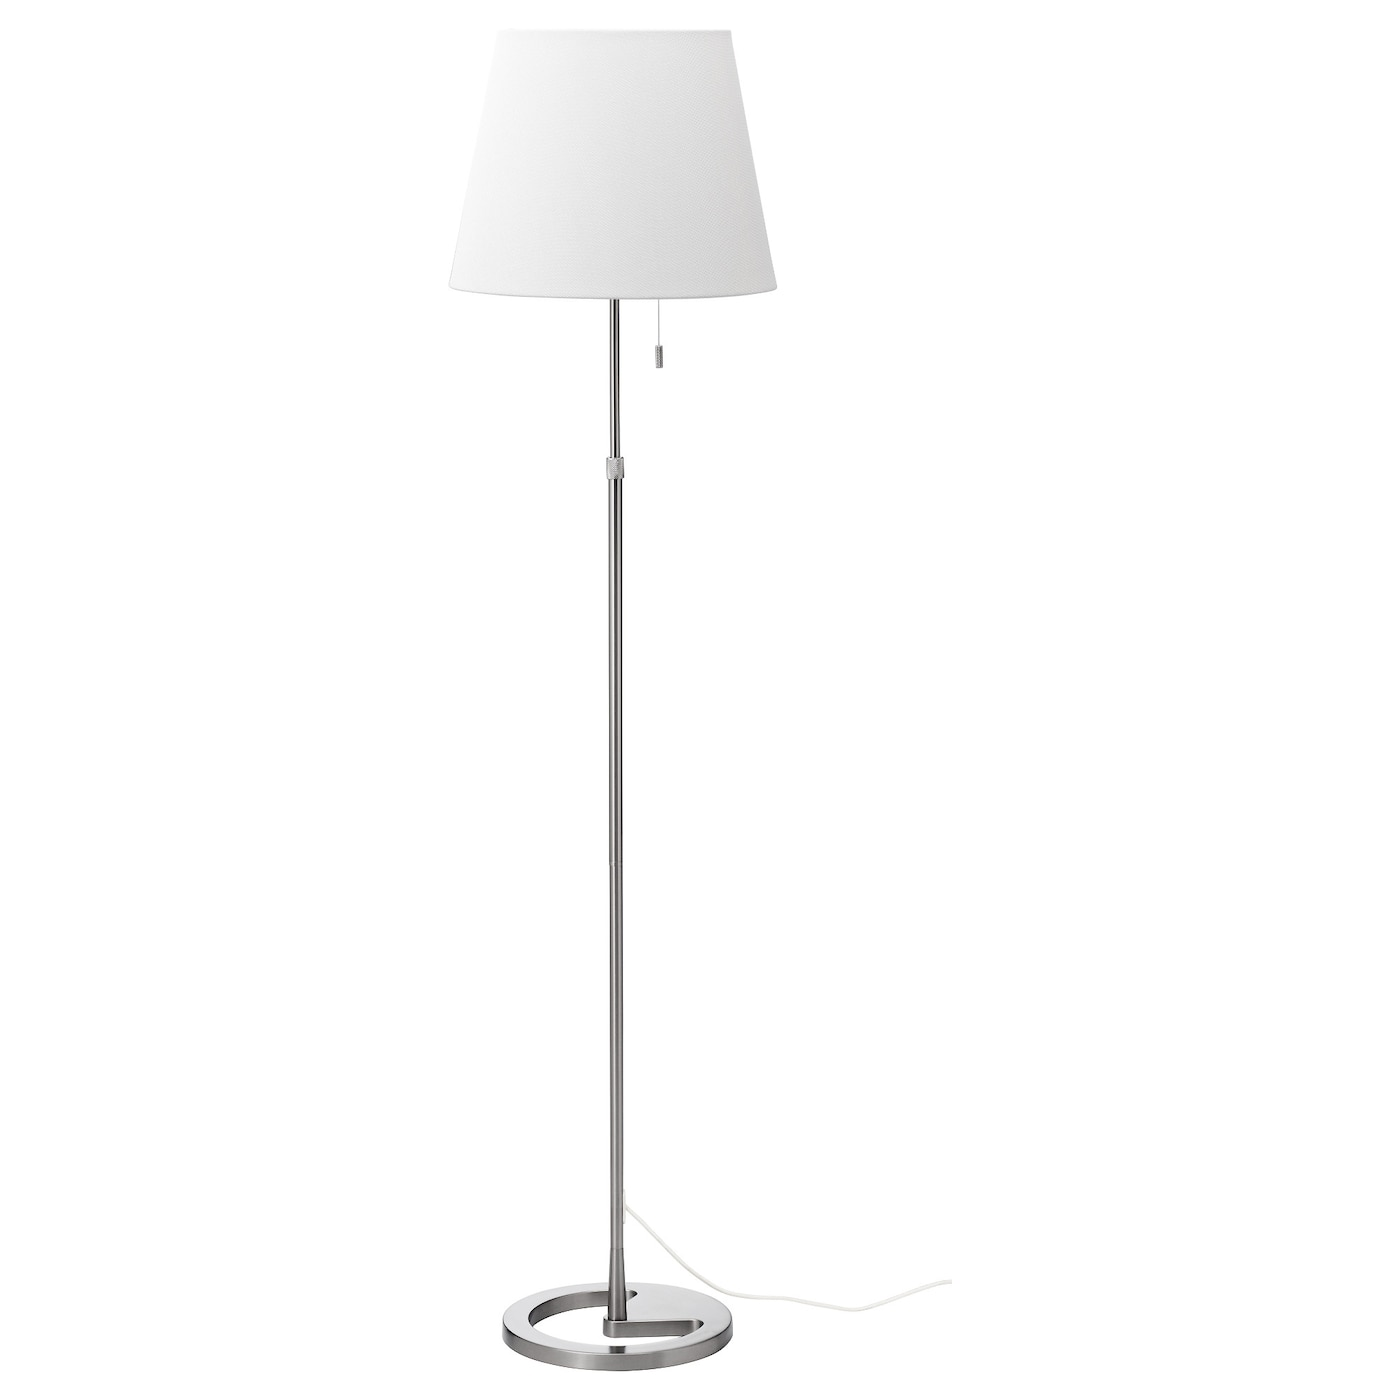 Kinderbett Matratze Ikea Test ~ IKEA NYFORS floor lamp The height is adjustable to suit your lighting